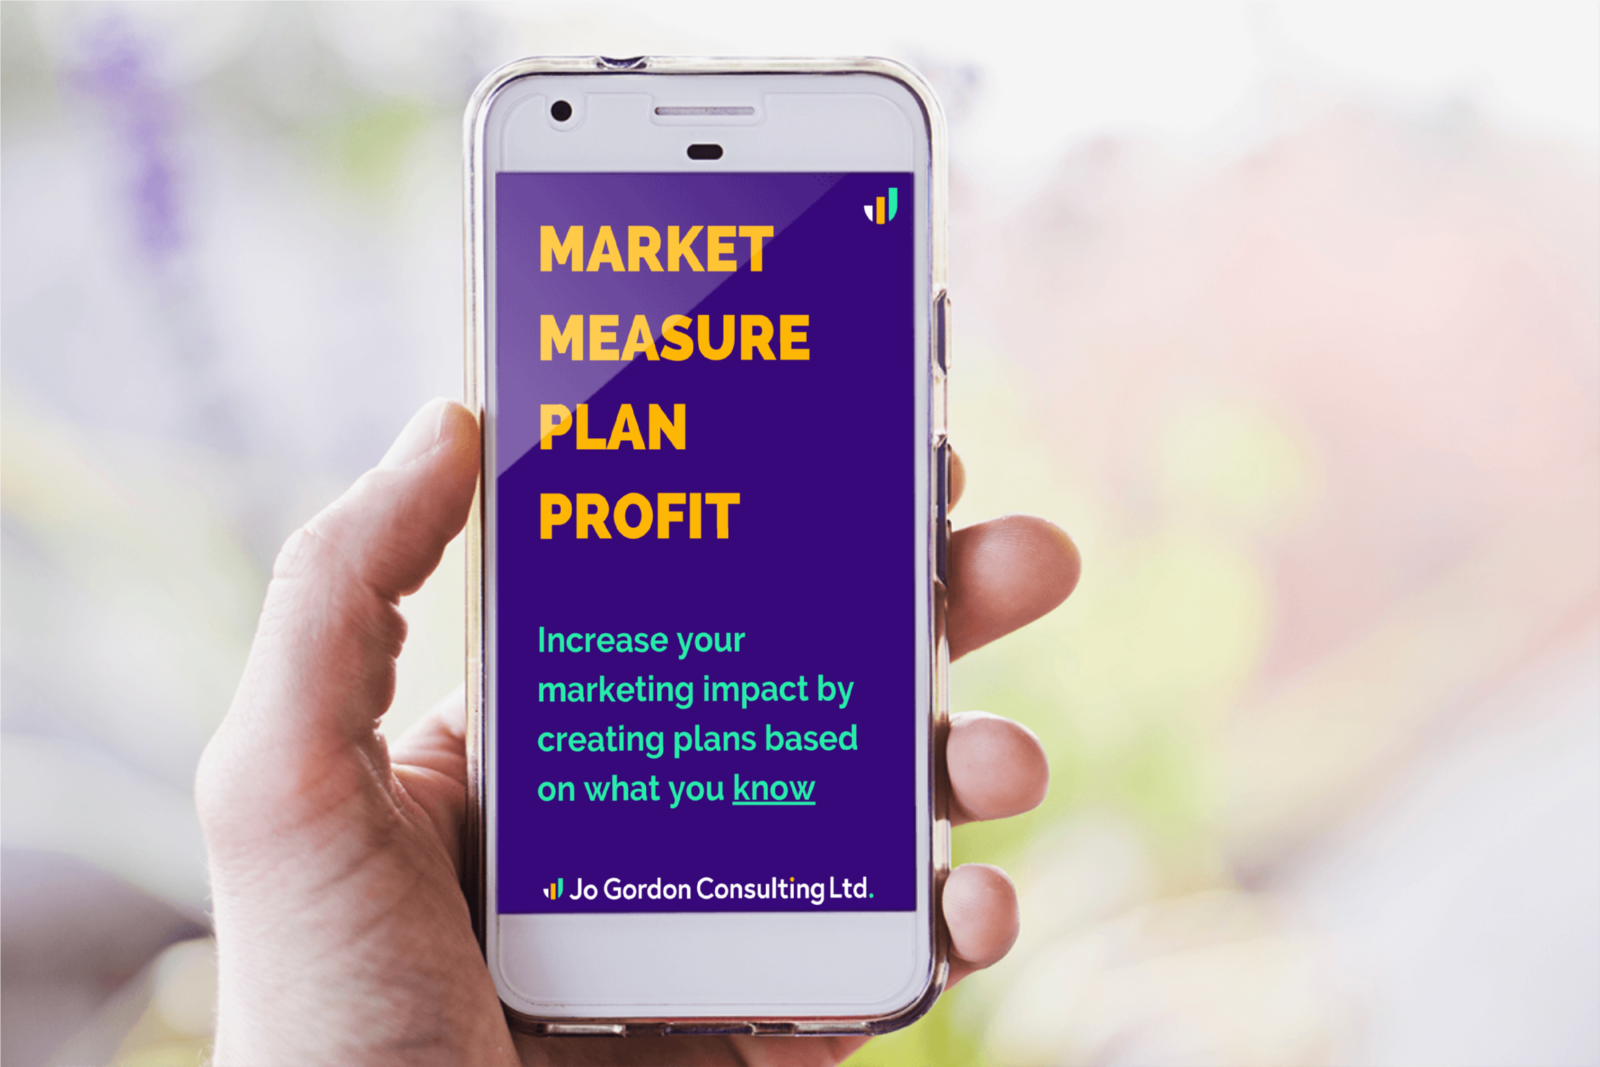 Market, Measure, Plan, Profit: Increase your marketing impact by creating plans based on what you know.